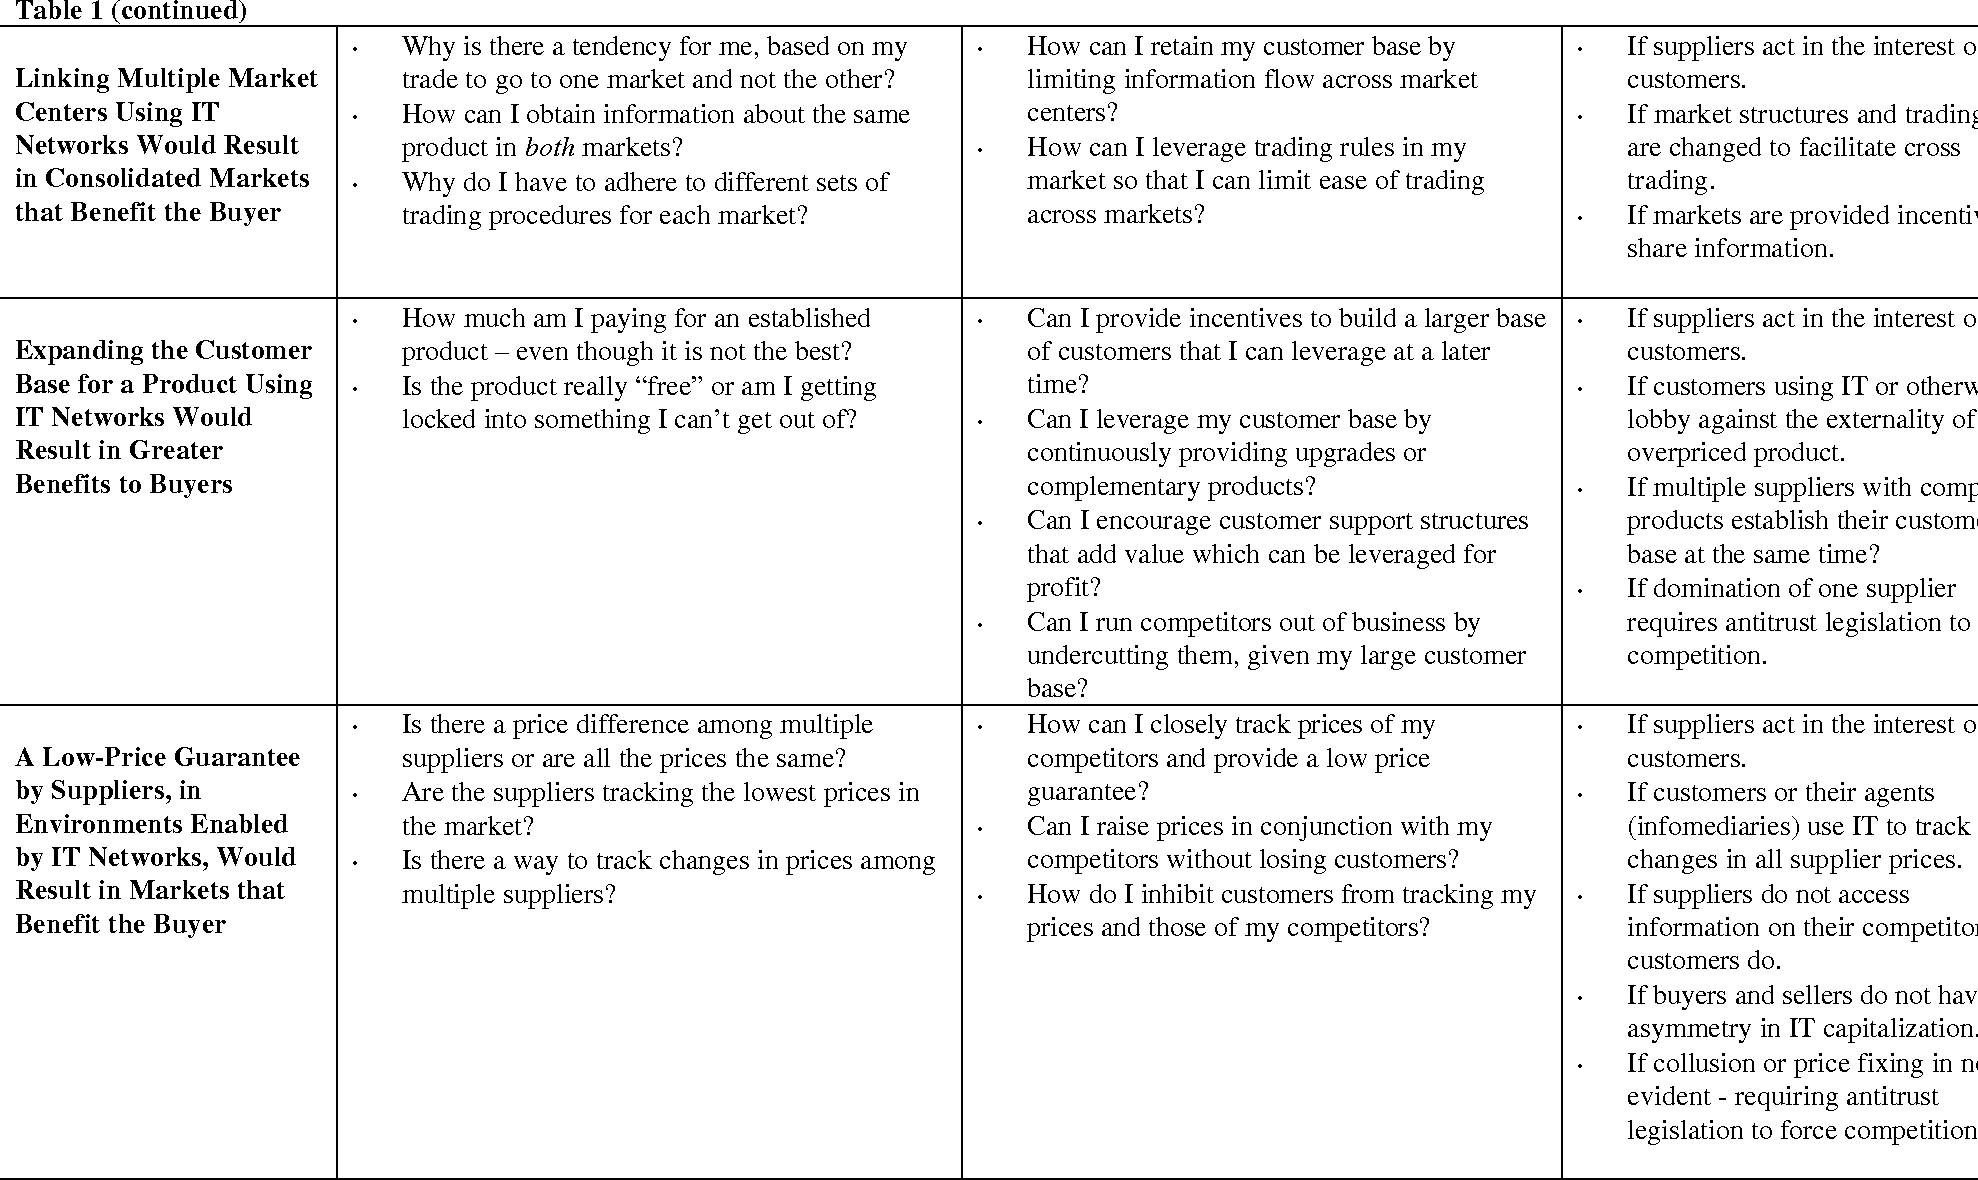 Table 1 from Six Myths of Information and Markets